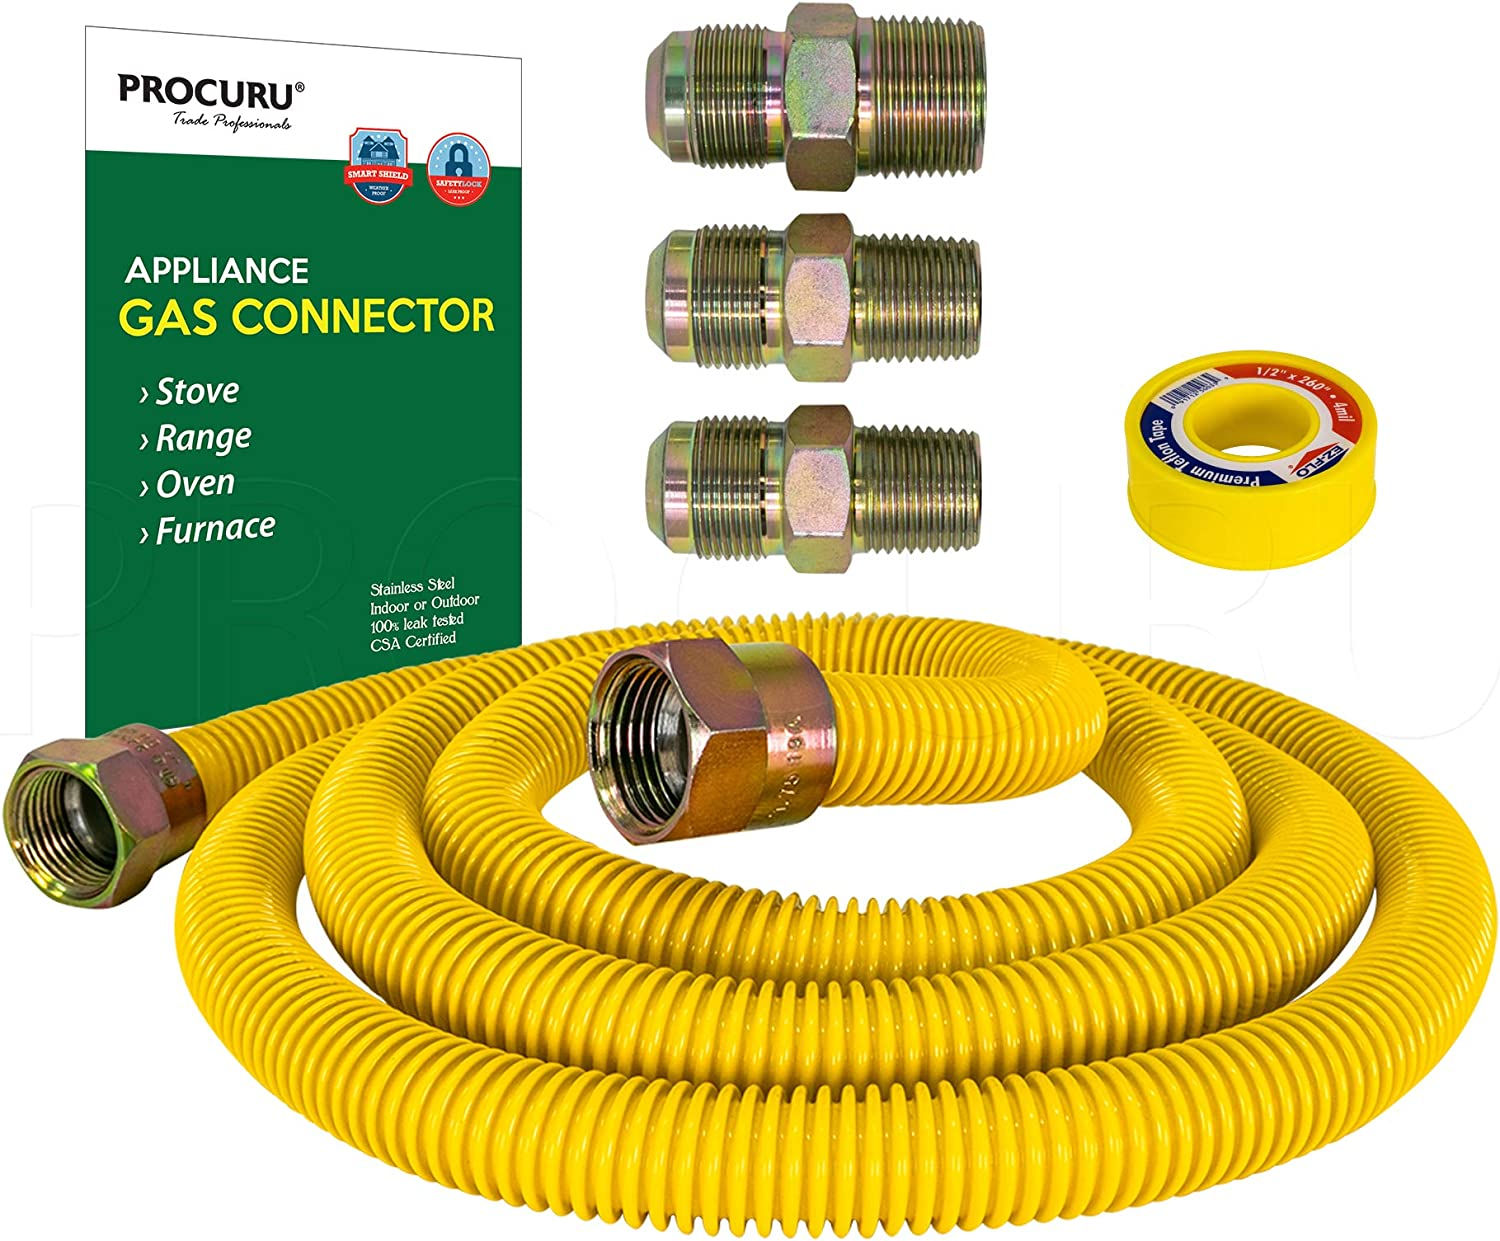 "PROCURU 5/8"" OD x 72"" Gas Flex Line Connector Kit for Stove Range, Furnace WeatherProof Stainless Steel with SafeGuard Coating"